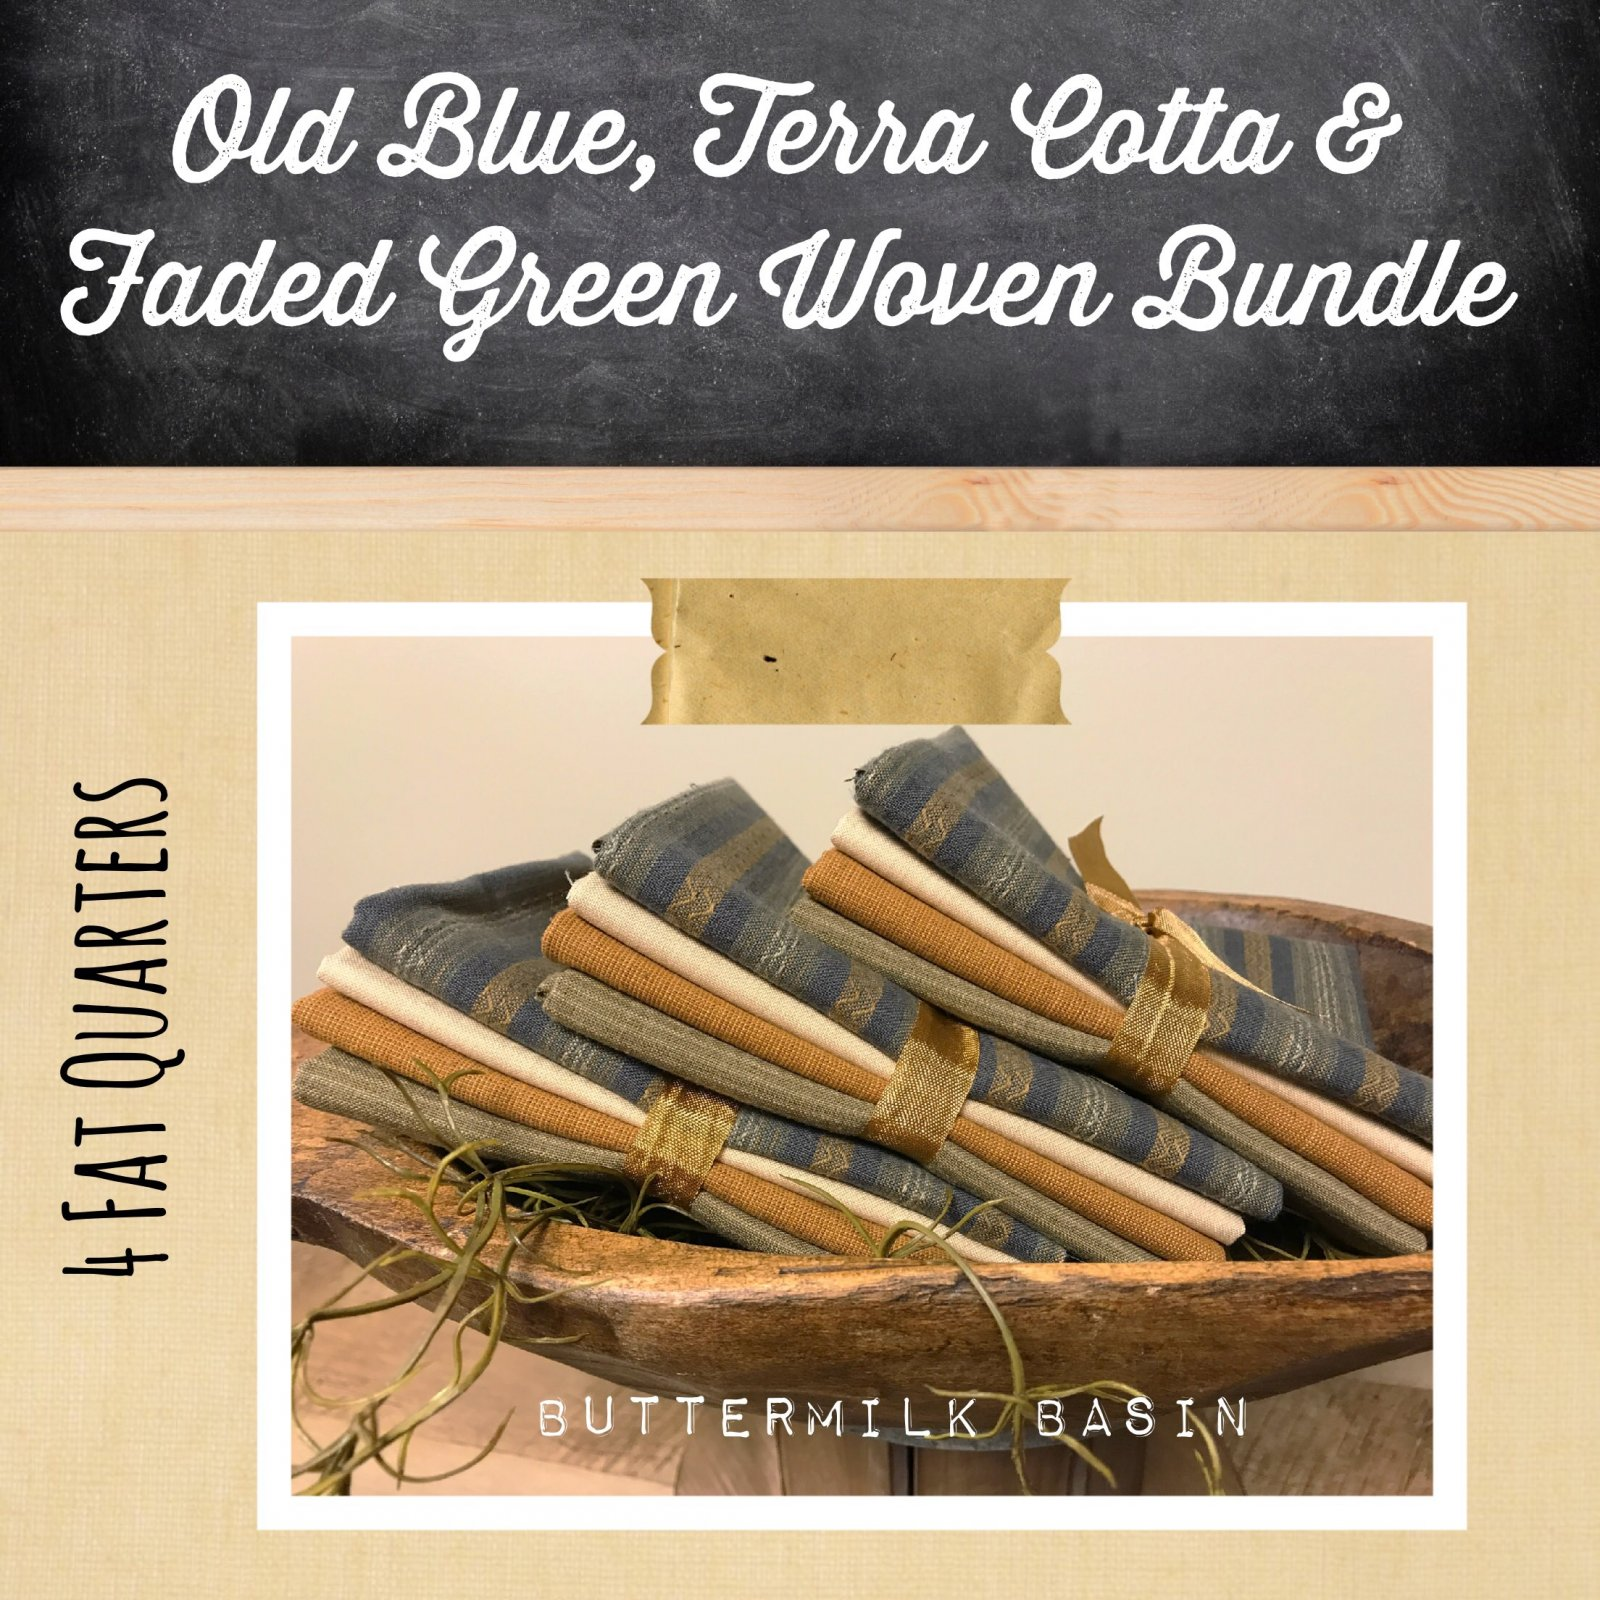 Old Blue, Terra Cotta & Faded Green Woven Bundle